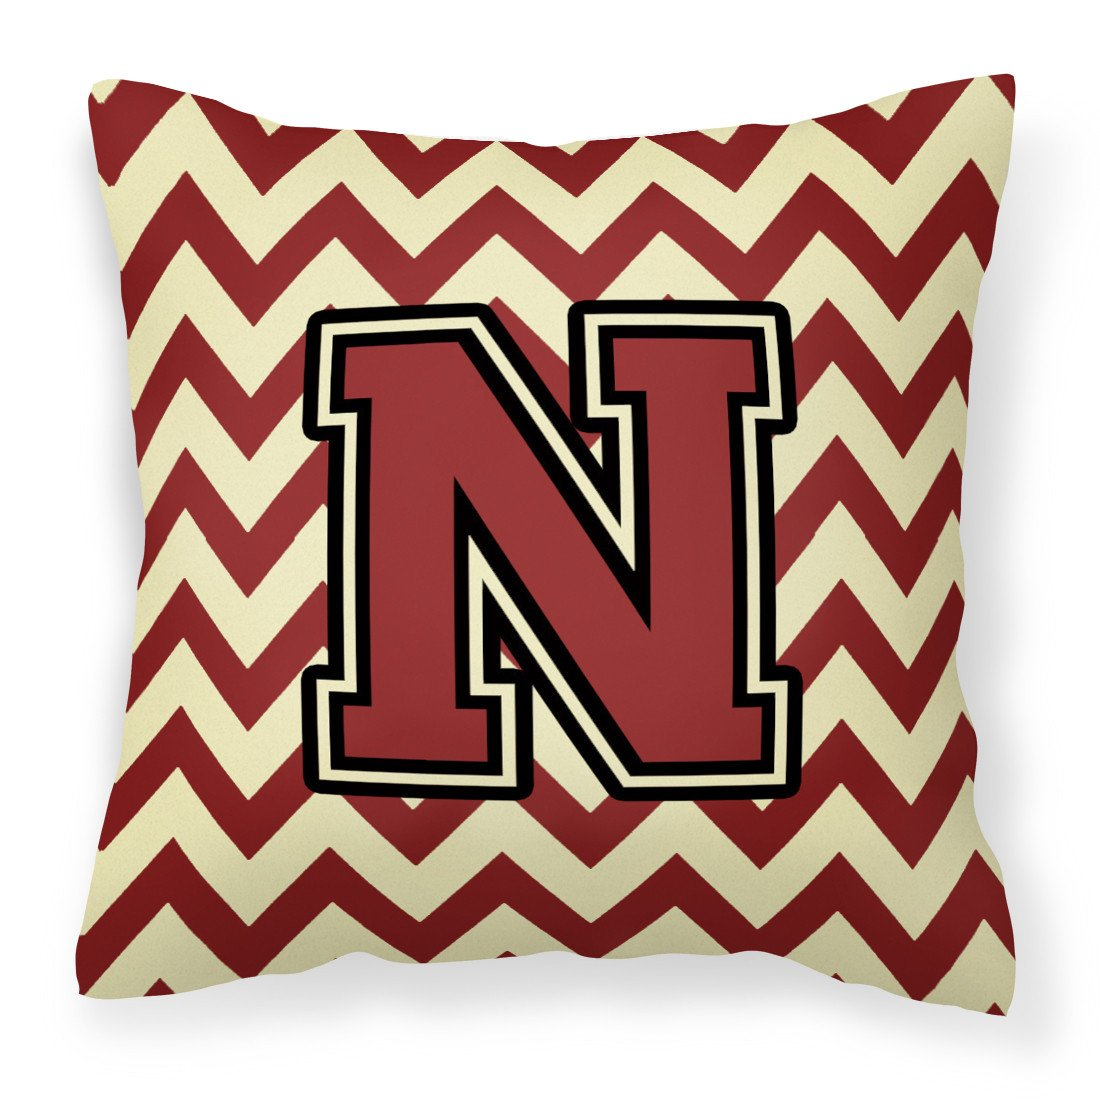 Letter N Chevron Maroon and Gold Fabric Decorative Pillow CJ1061-NPW1414 by Caroline's Treasures